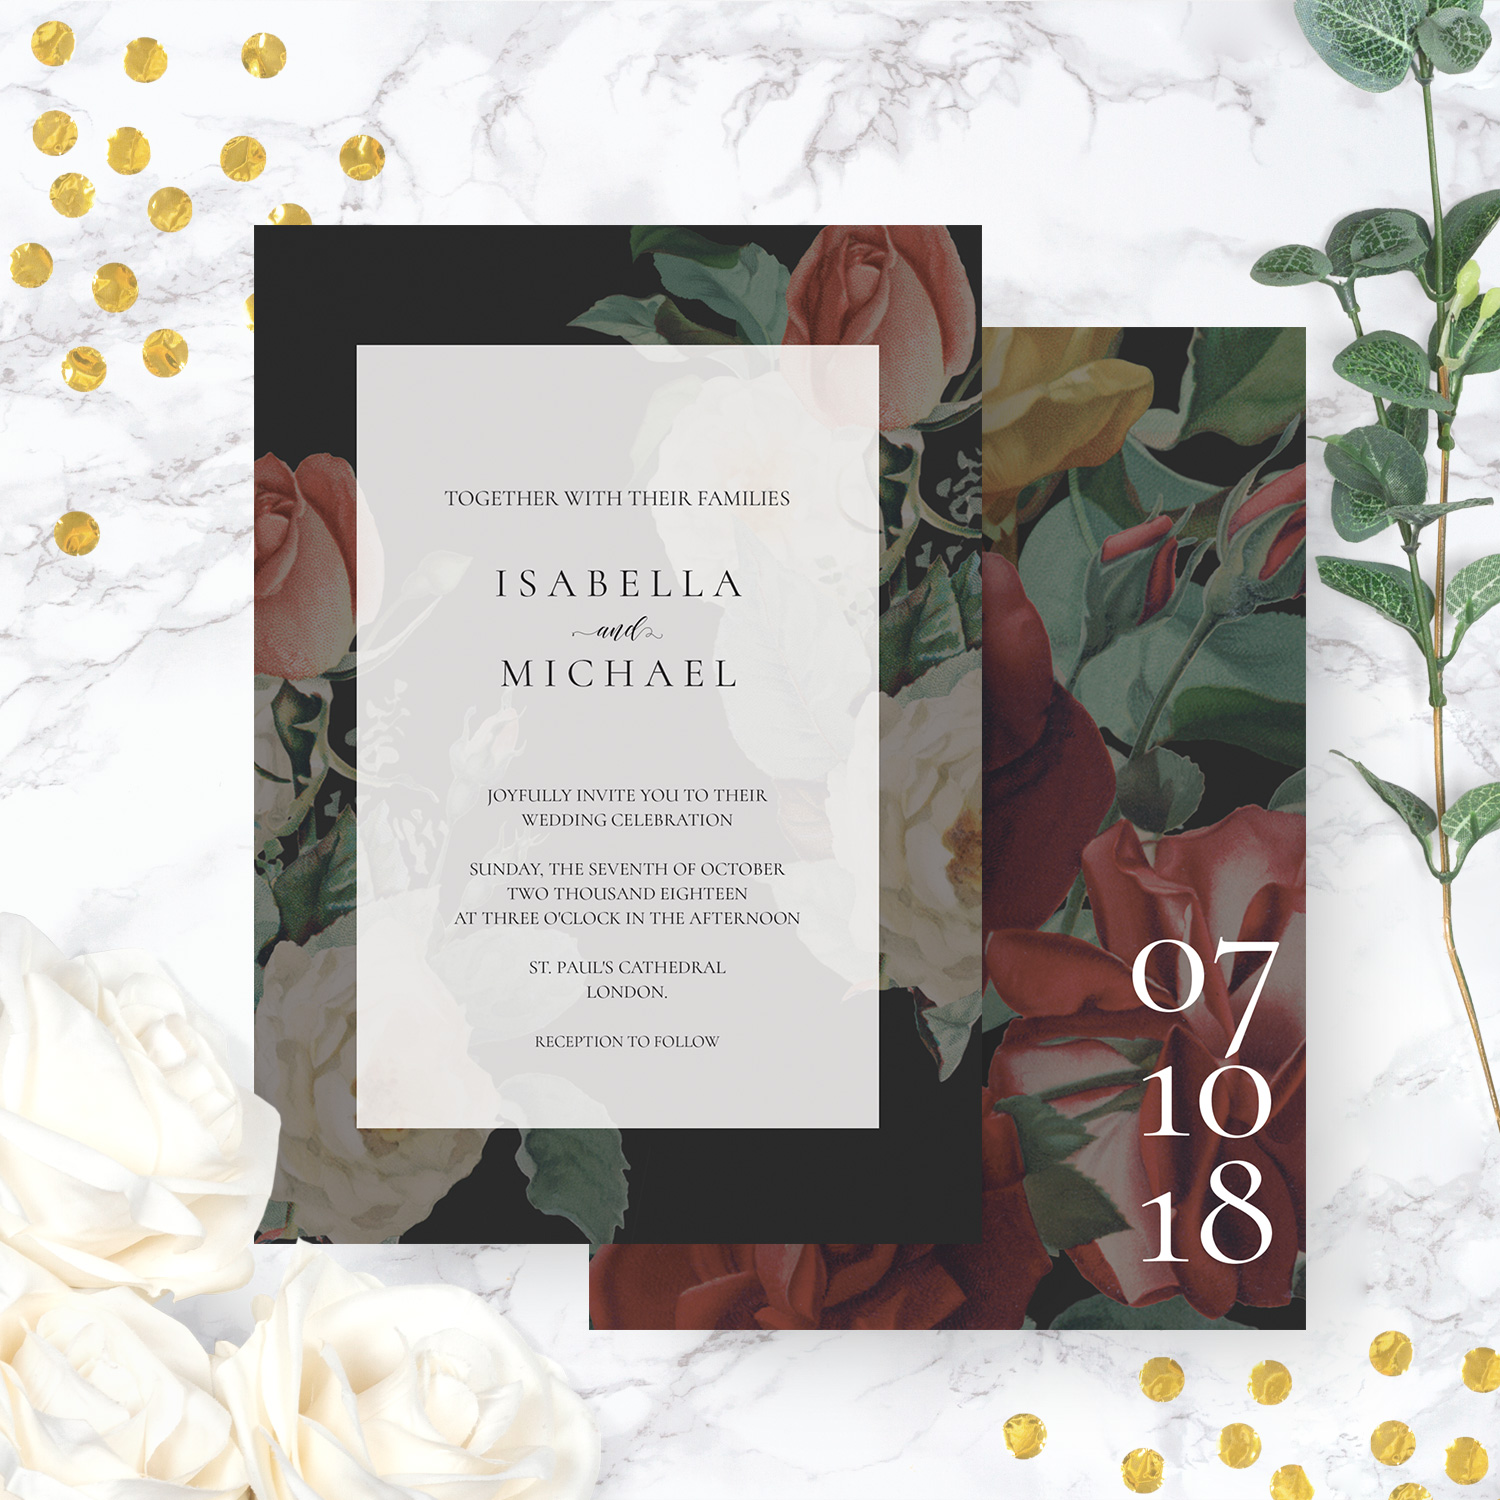 striking wedding invite - flowery wedding invitations killarney